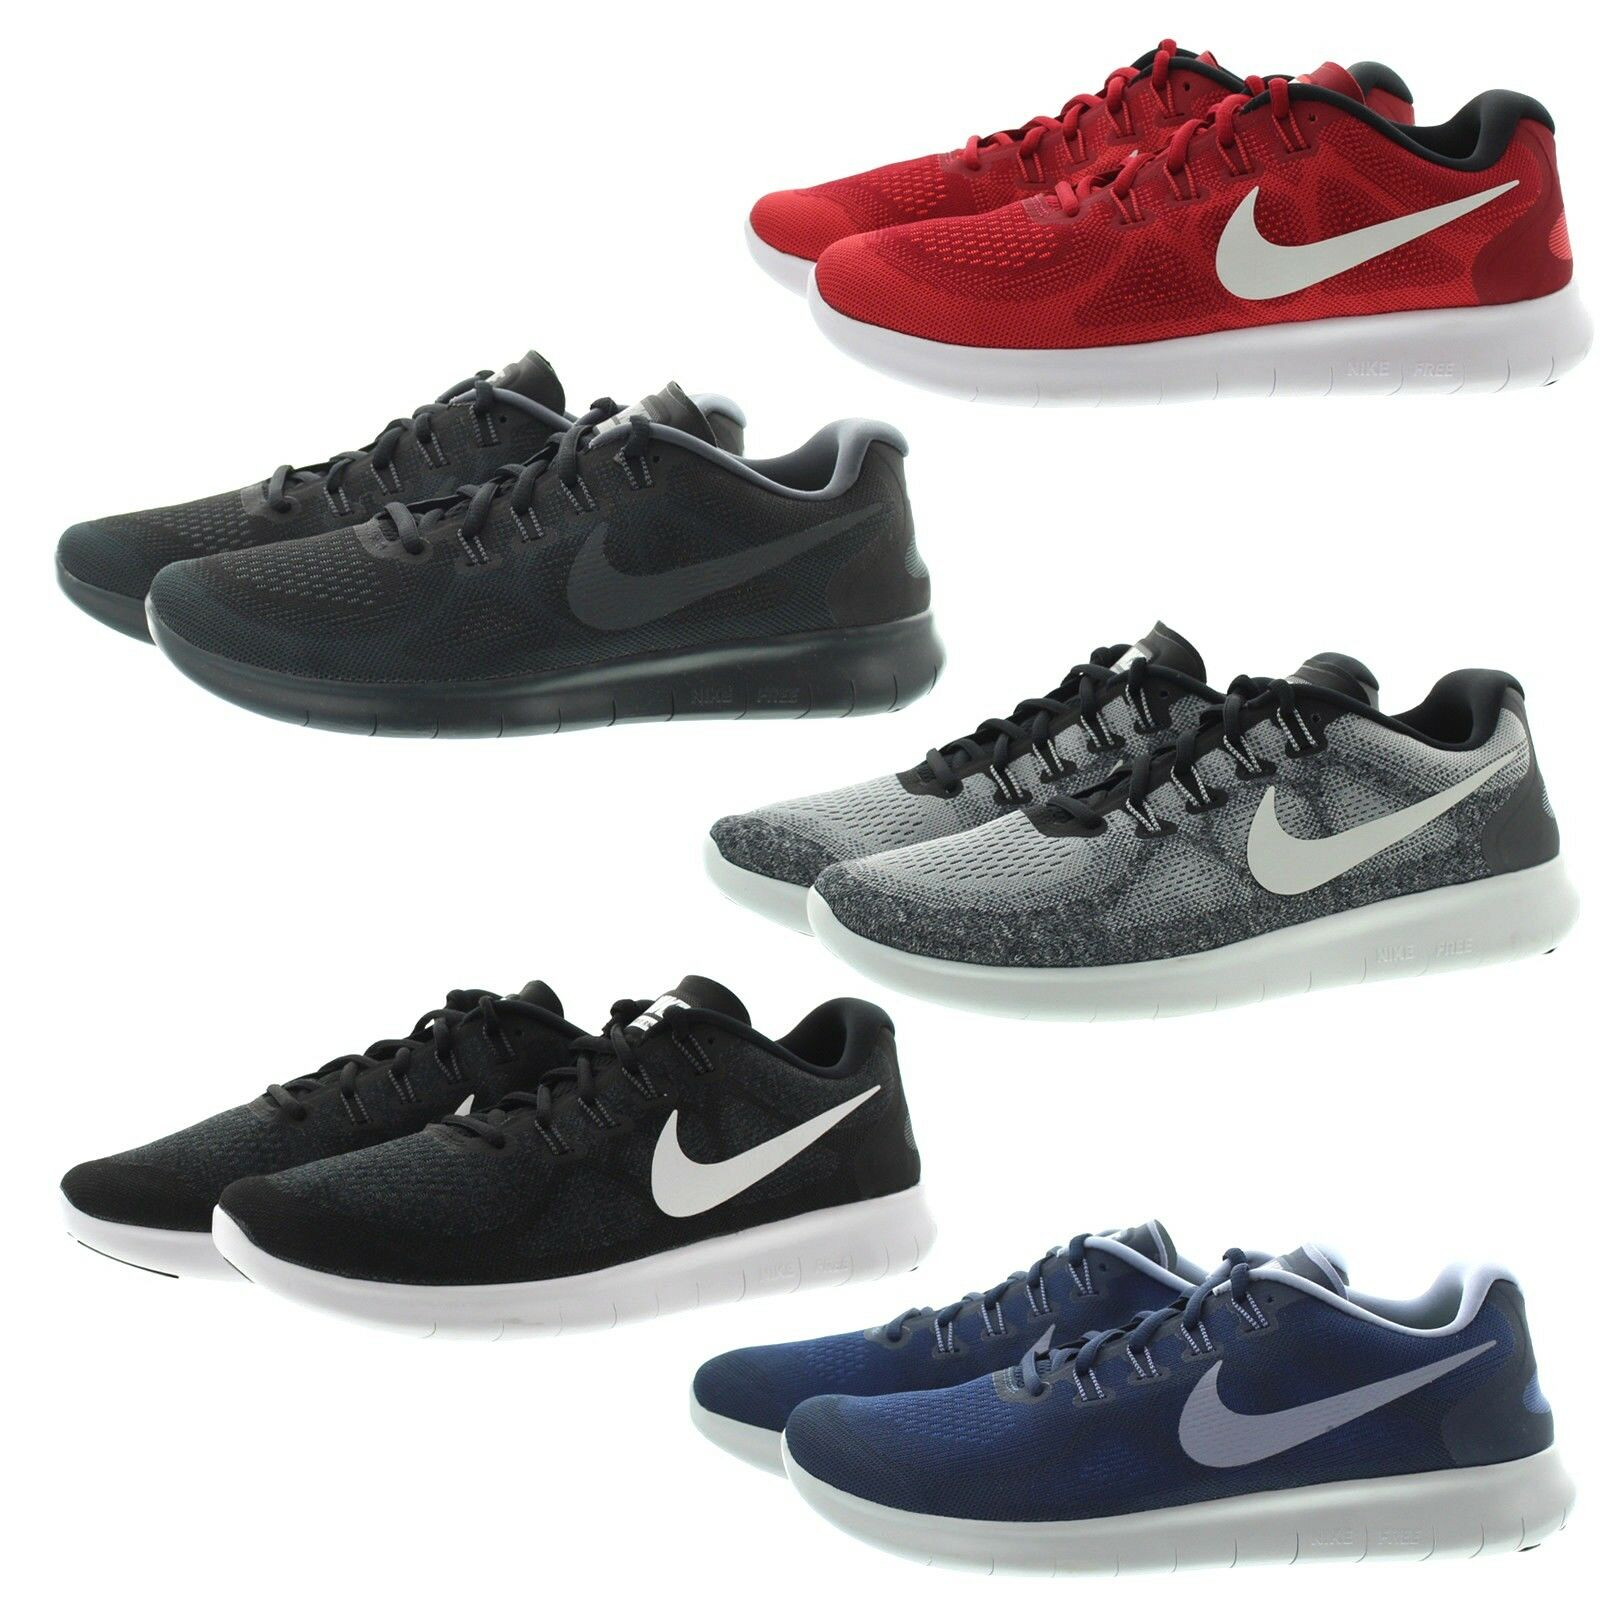 Nike 880839 Mens Free RN Lightweight Performance Running shoes Sneakers